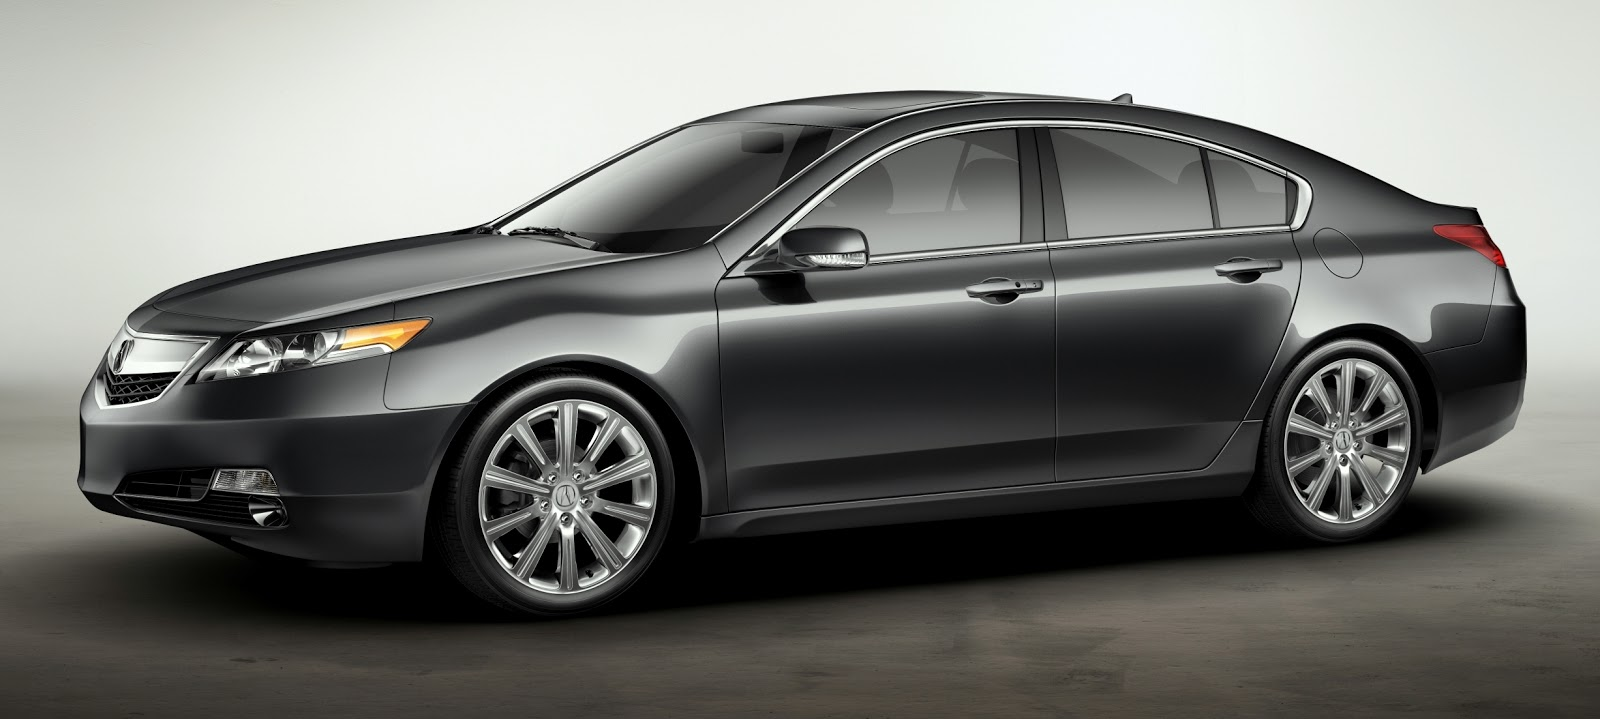 Uautoknow Net Acura Tl Special Edition Joins 2013 Line Up